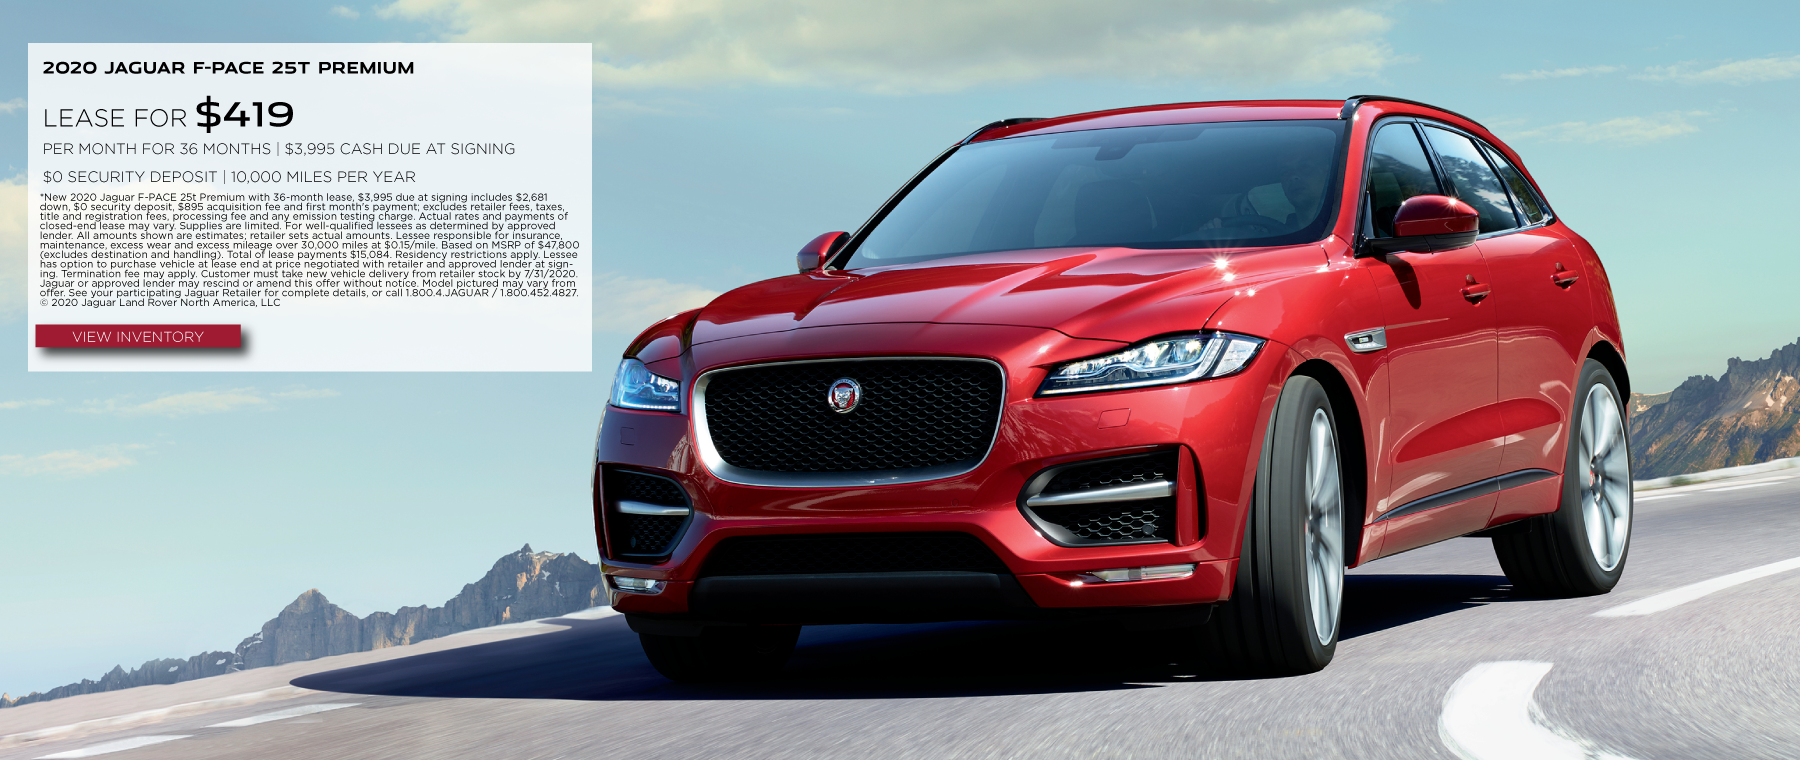 2020 JAGUAR F-PACE 25T PREMIUM. $419 PER MONTH. 36 MONTH LEASE TERM. $3,995 CASH DUE AT SIGNING. $0 SECURITY DEPOSIT. 10,000 MILES PER YEAR. EXCLUDES RETAILER FEES, TAXES, TITLE AND REGISTRATION FEES, PROCESSING FEE AND ANY EMISSION TESTING CHARGE. OFFER ENDS 7/31/2020. VIEW INVENTORY. RED JAGUAR F-PACE DRIVING DOWN ROAD IN MOUNTAINS.